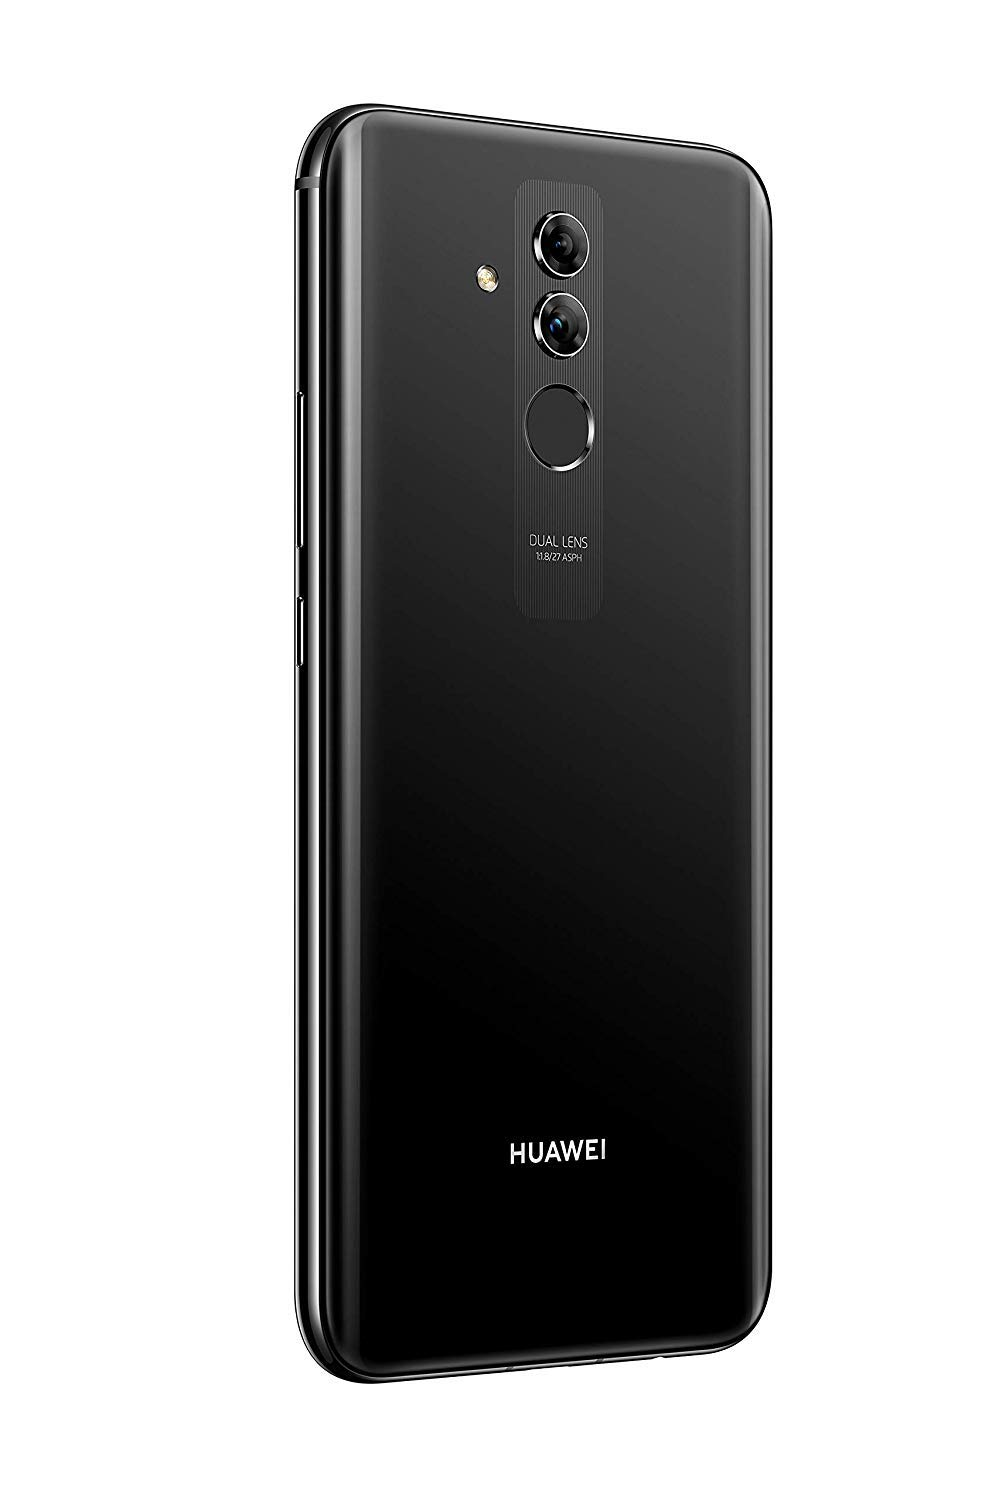 Huawei Mate20Lite 4 GB/64 GB Single SIM Smartphone - Black (United Kingdom)